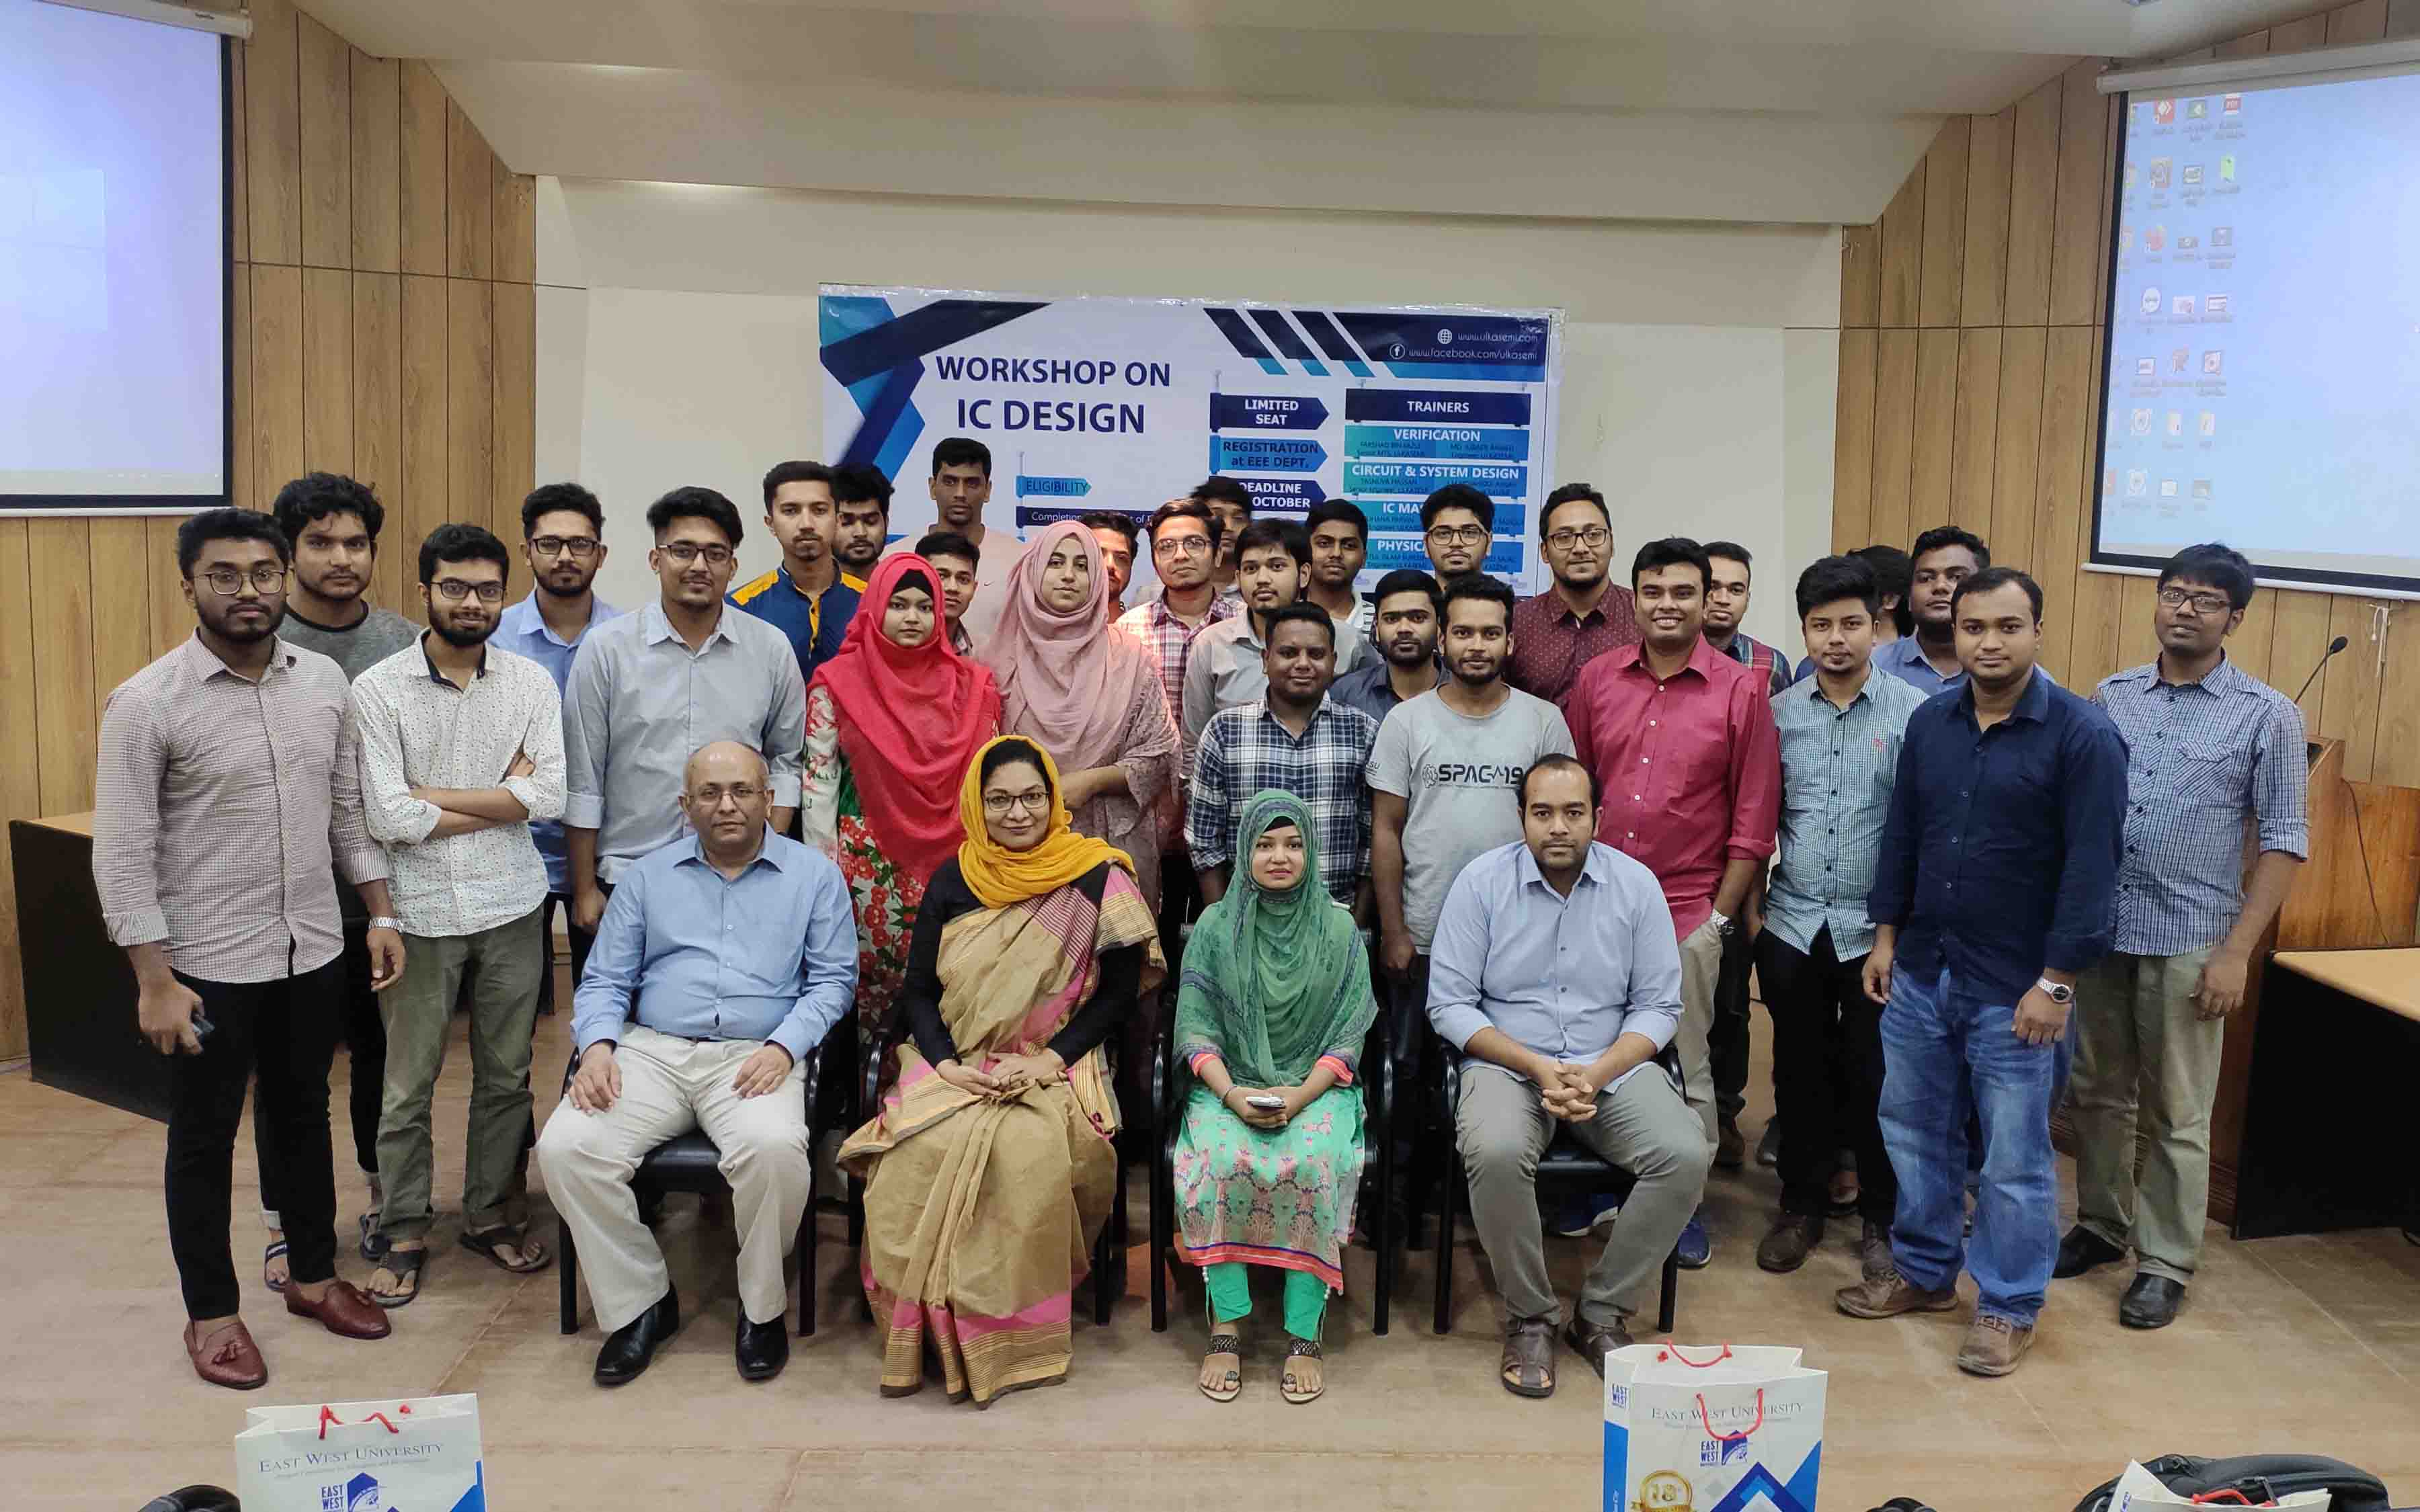 Industry Supported Workshop on IC Design Organized by Department of EEE, EWU